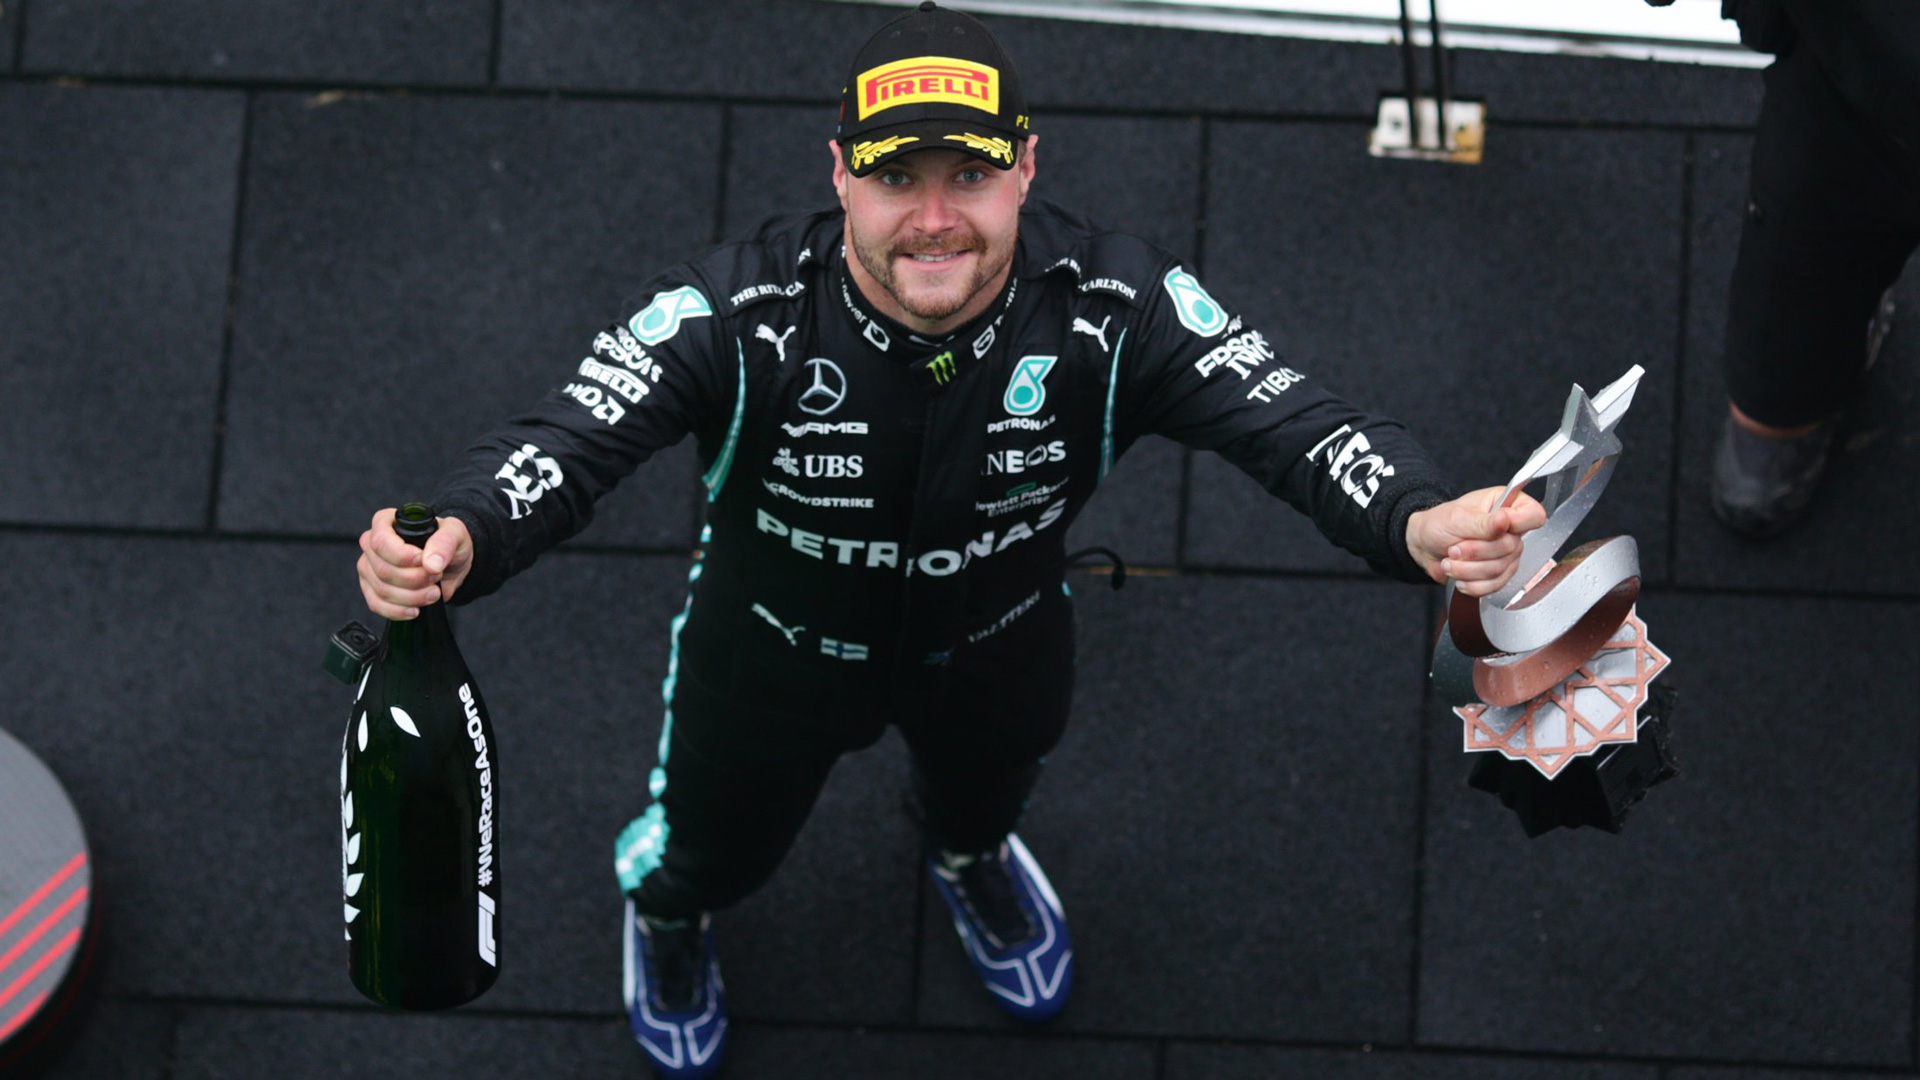 TREMAYNE: Redemption can rarely have tasted so good for Bottas in Turkey after his year from hell